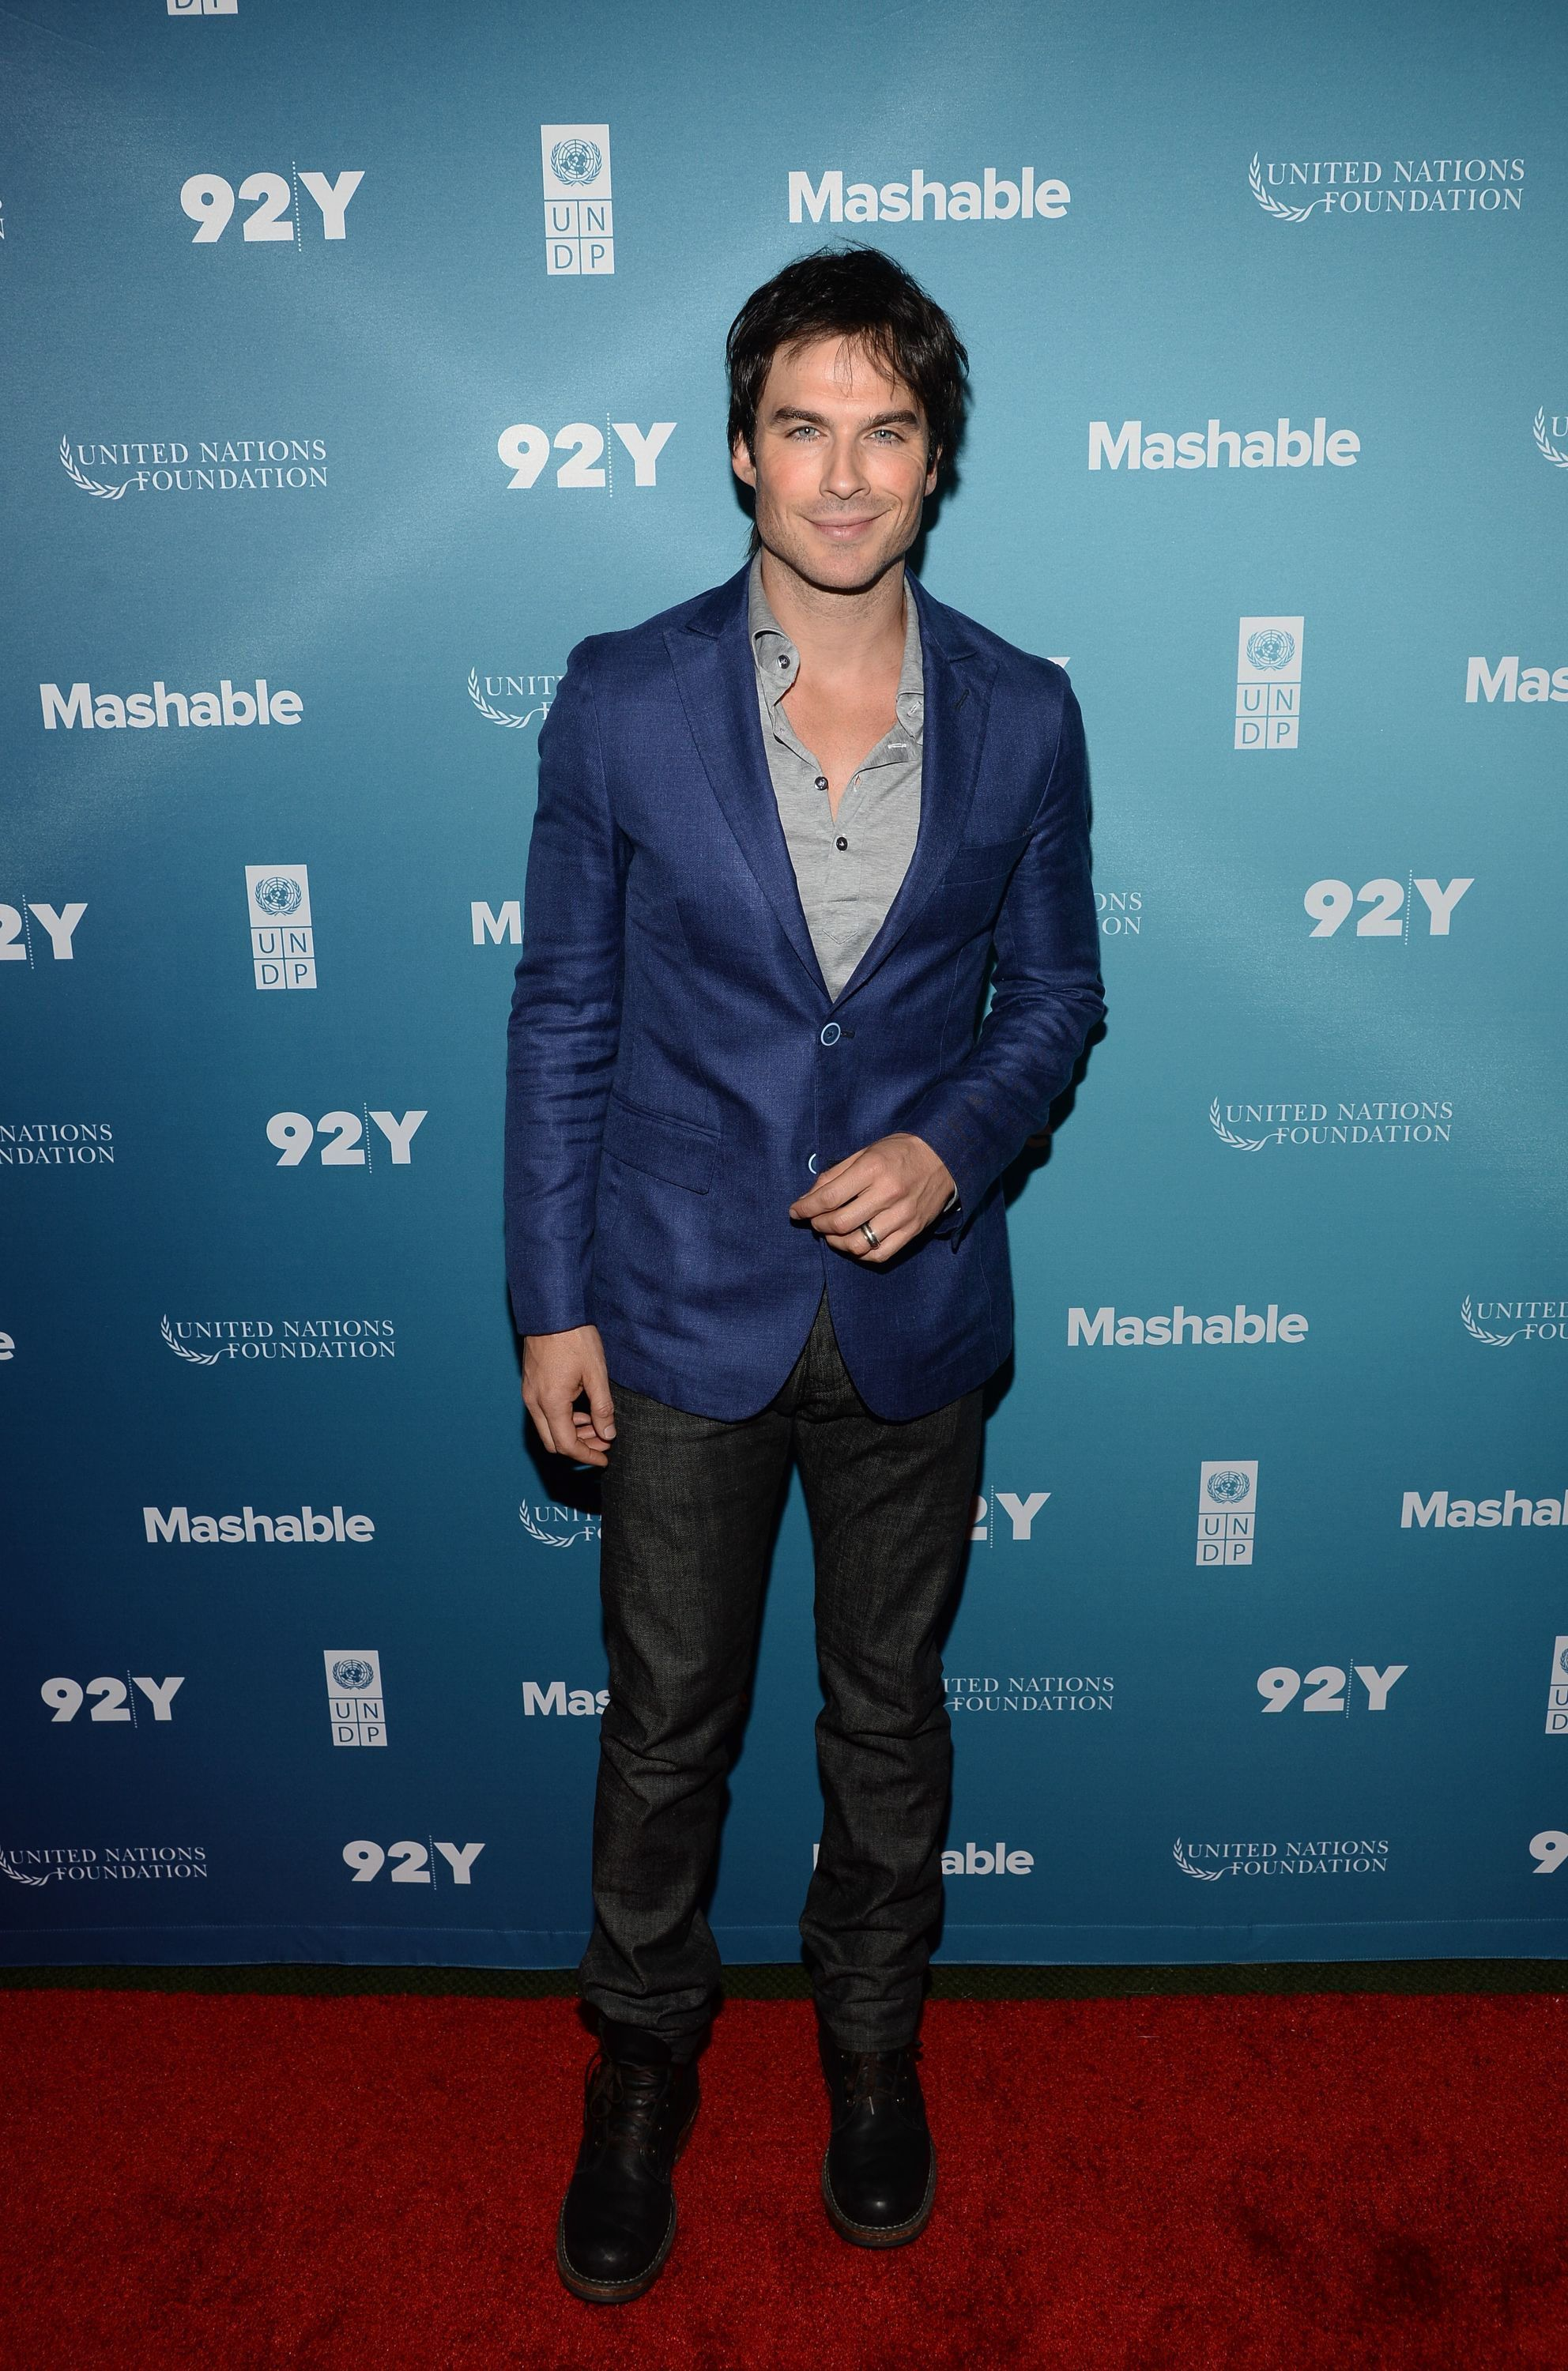 Cast Of Vampire Diaries: How Much Are They Worth? - Page 4 ...